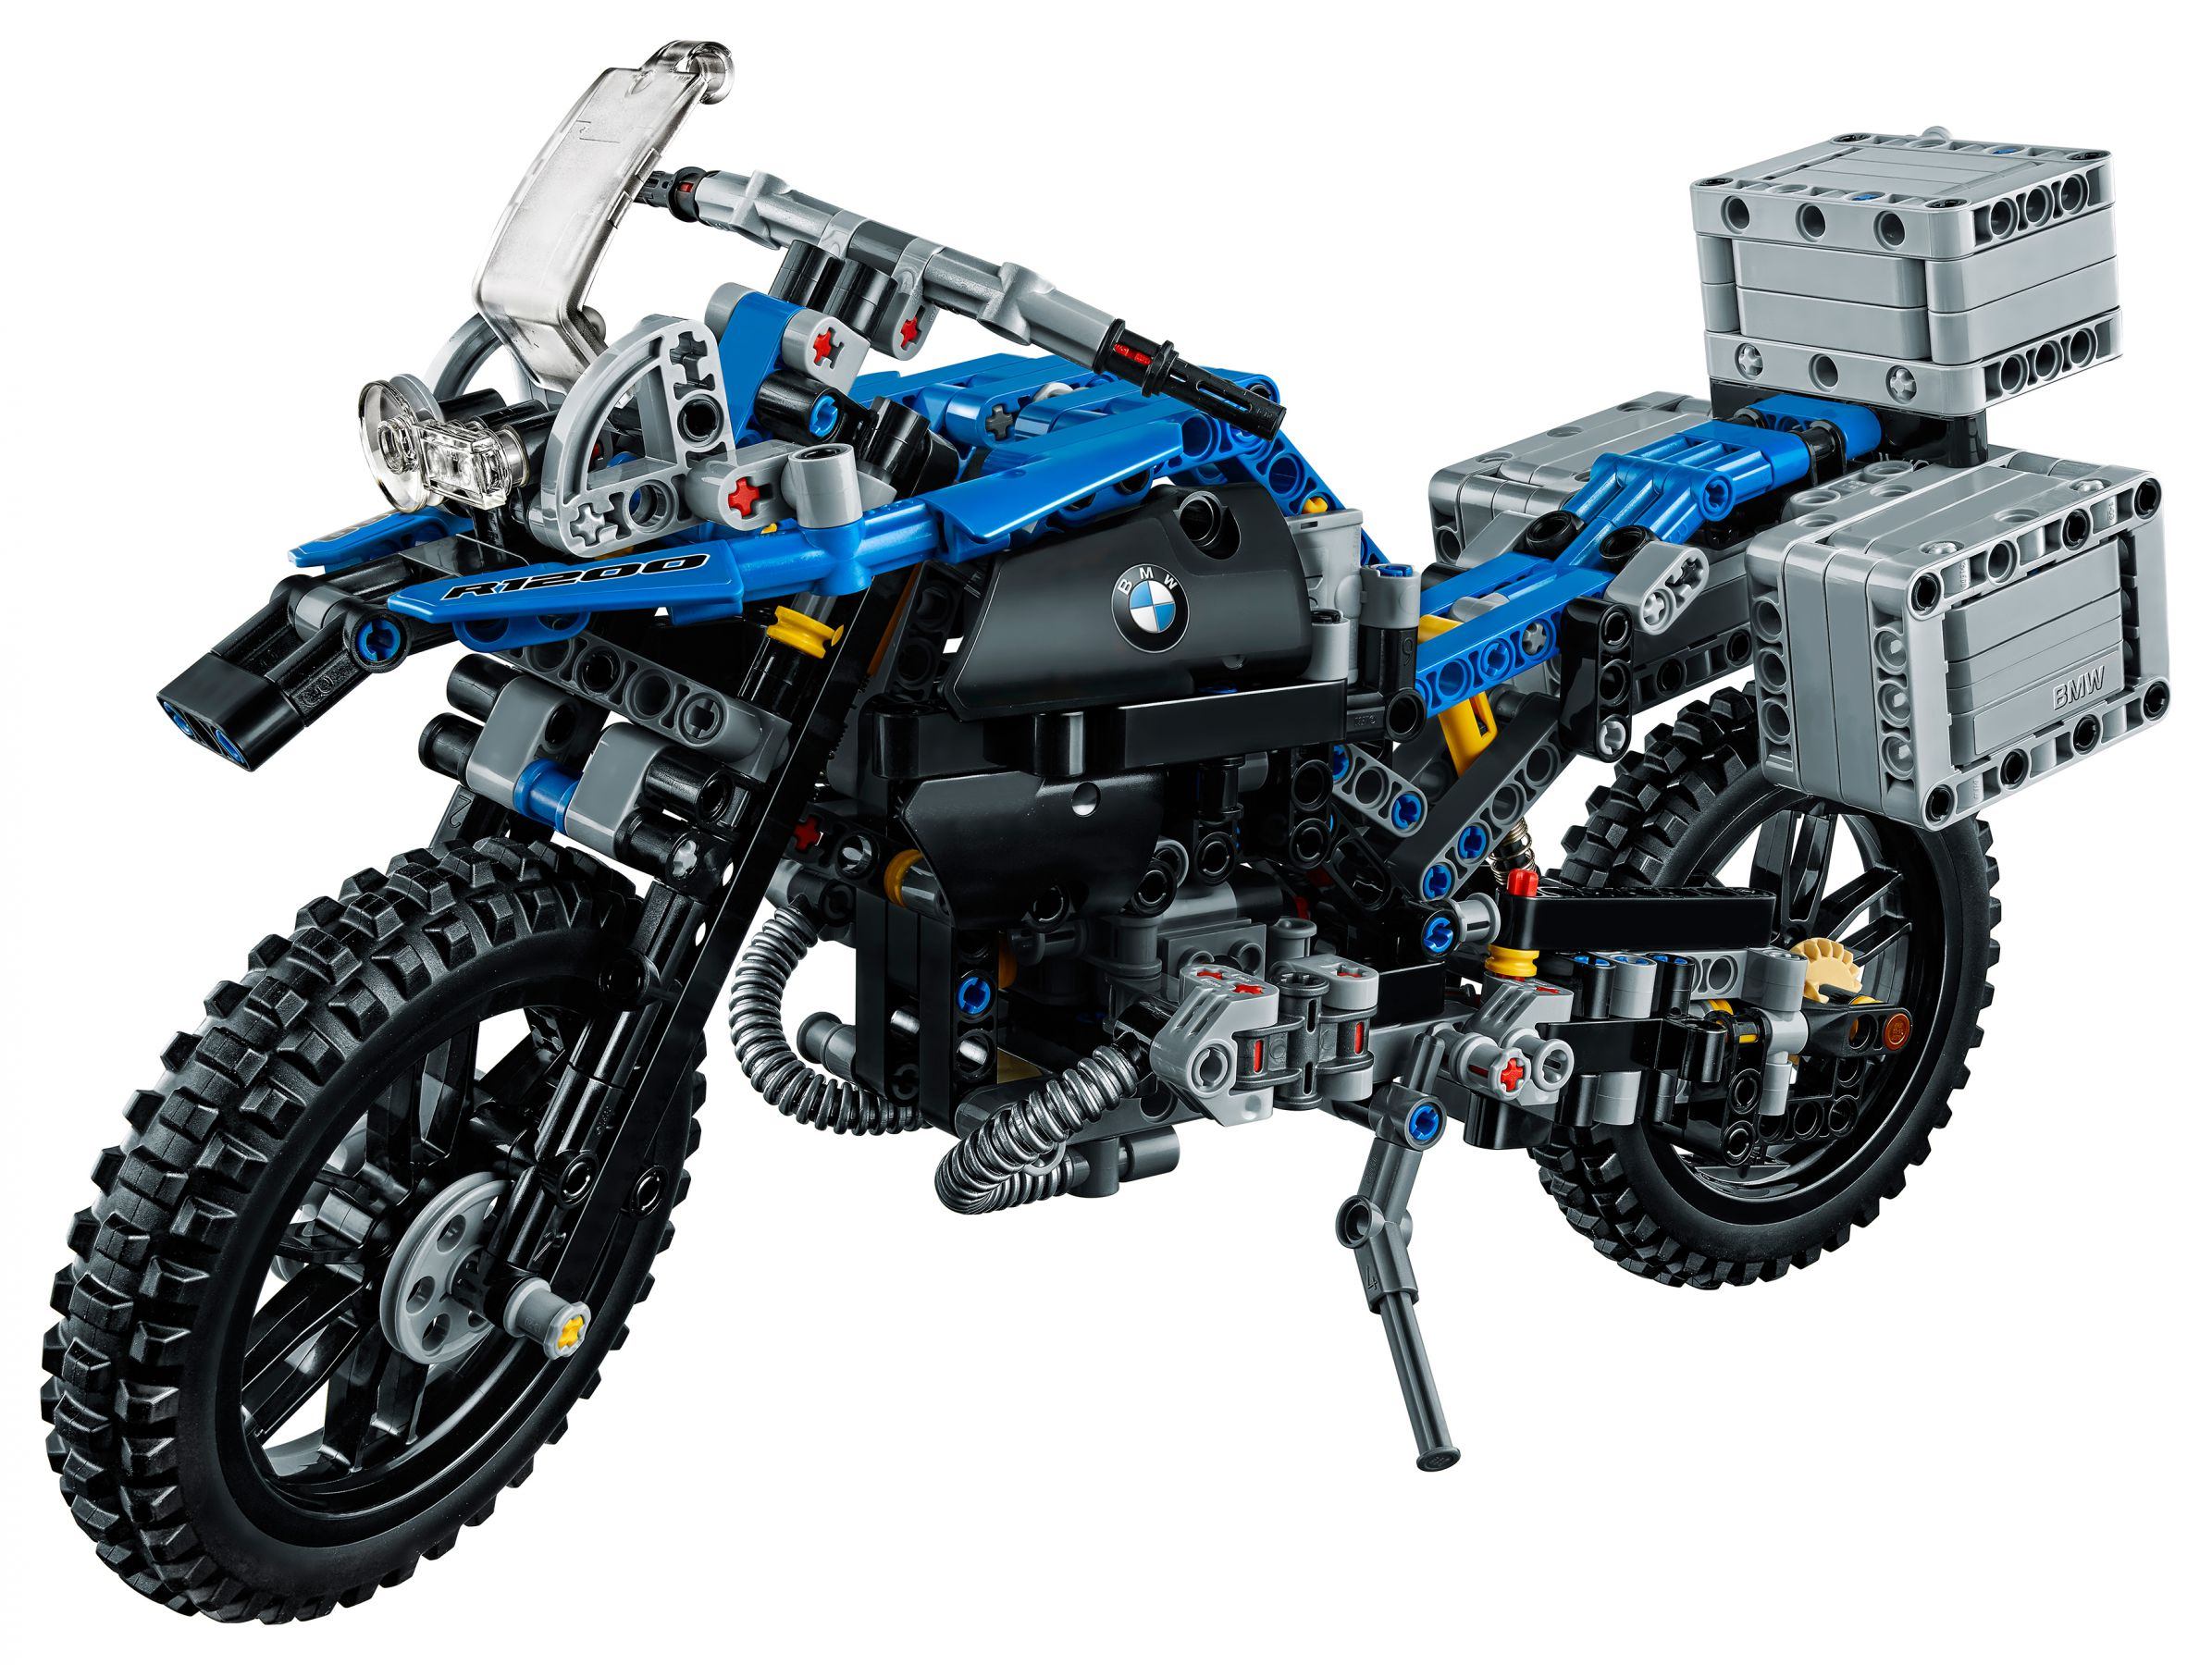 LEGO Technic 42063 BMW R 1200 GS Adventure LEGO_42063_bmw-R-1200-GS-Adventure_img1.jpg